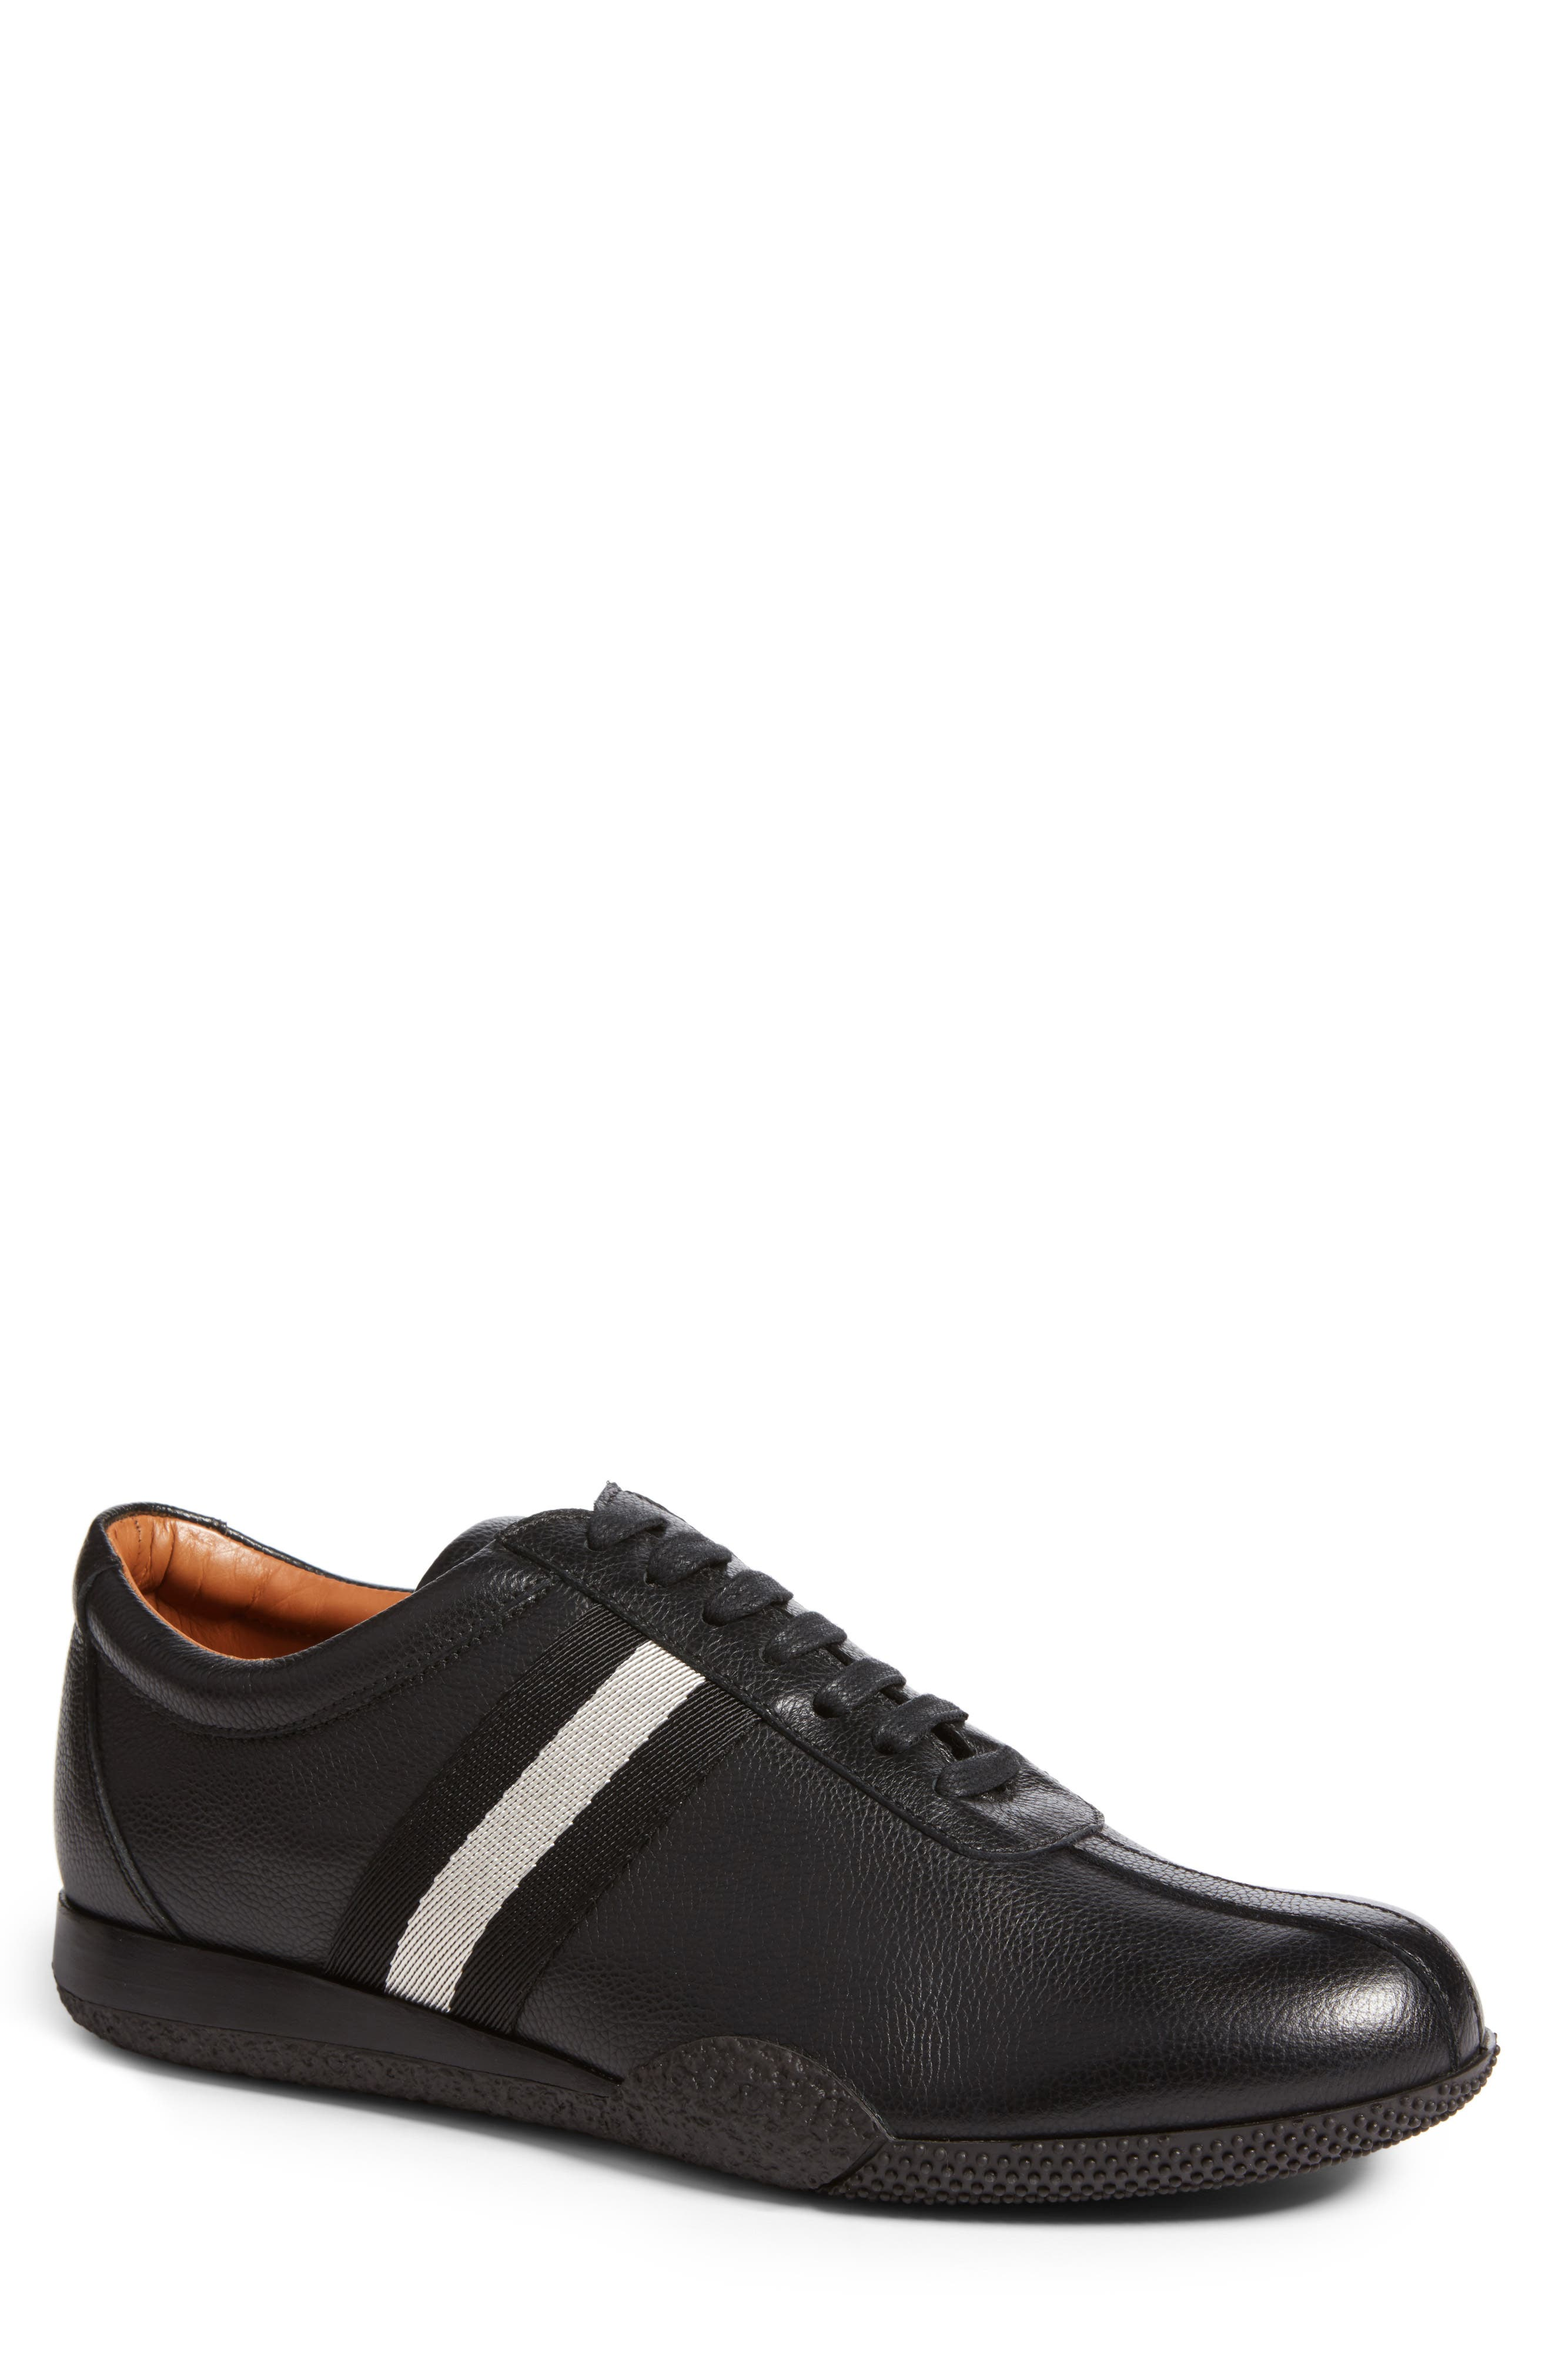 Bally 'Frenz' Perforated Sneaker